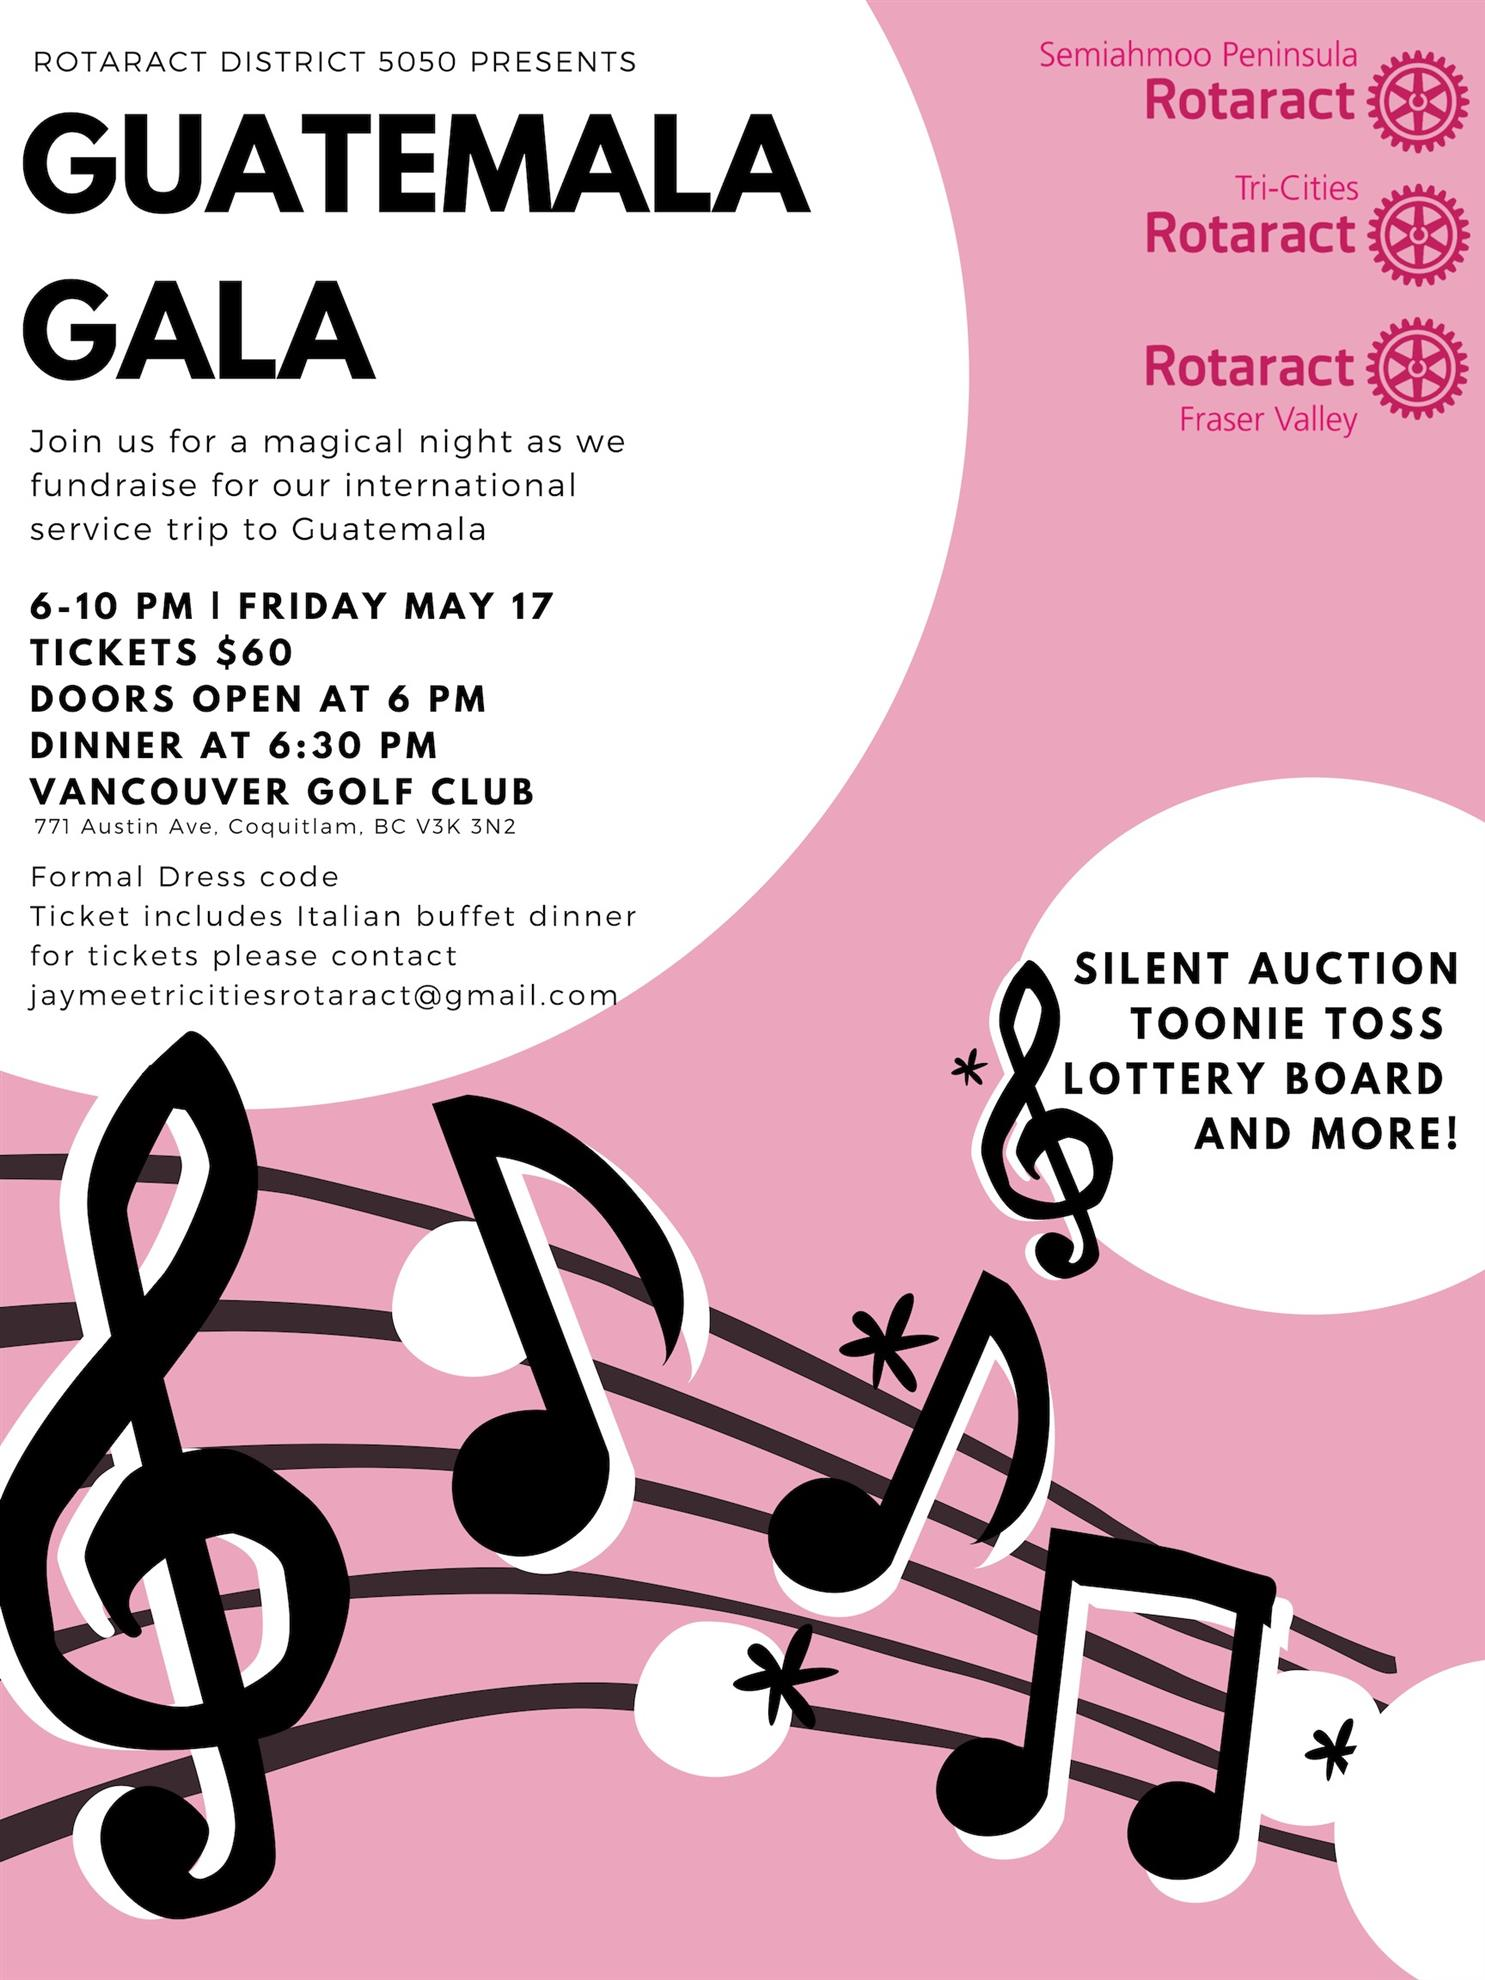 694aac50d3d ... a Pub Night on April 16th at the John B. Tickets are  25.00 Looks like  a fun night   their GALA for Guatemala is on May 17th at Vancouver Golf Club .